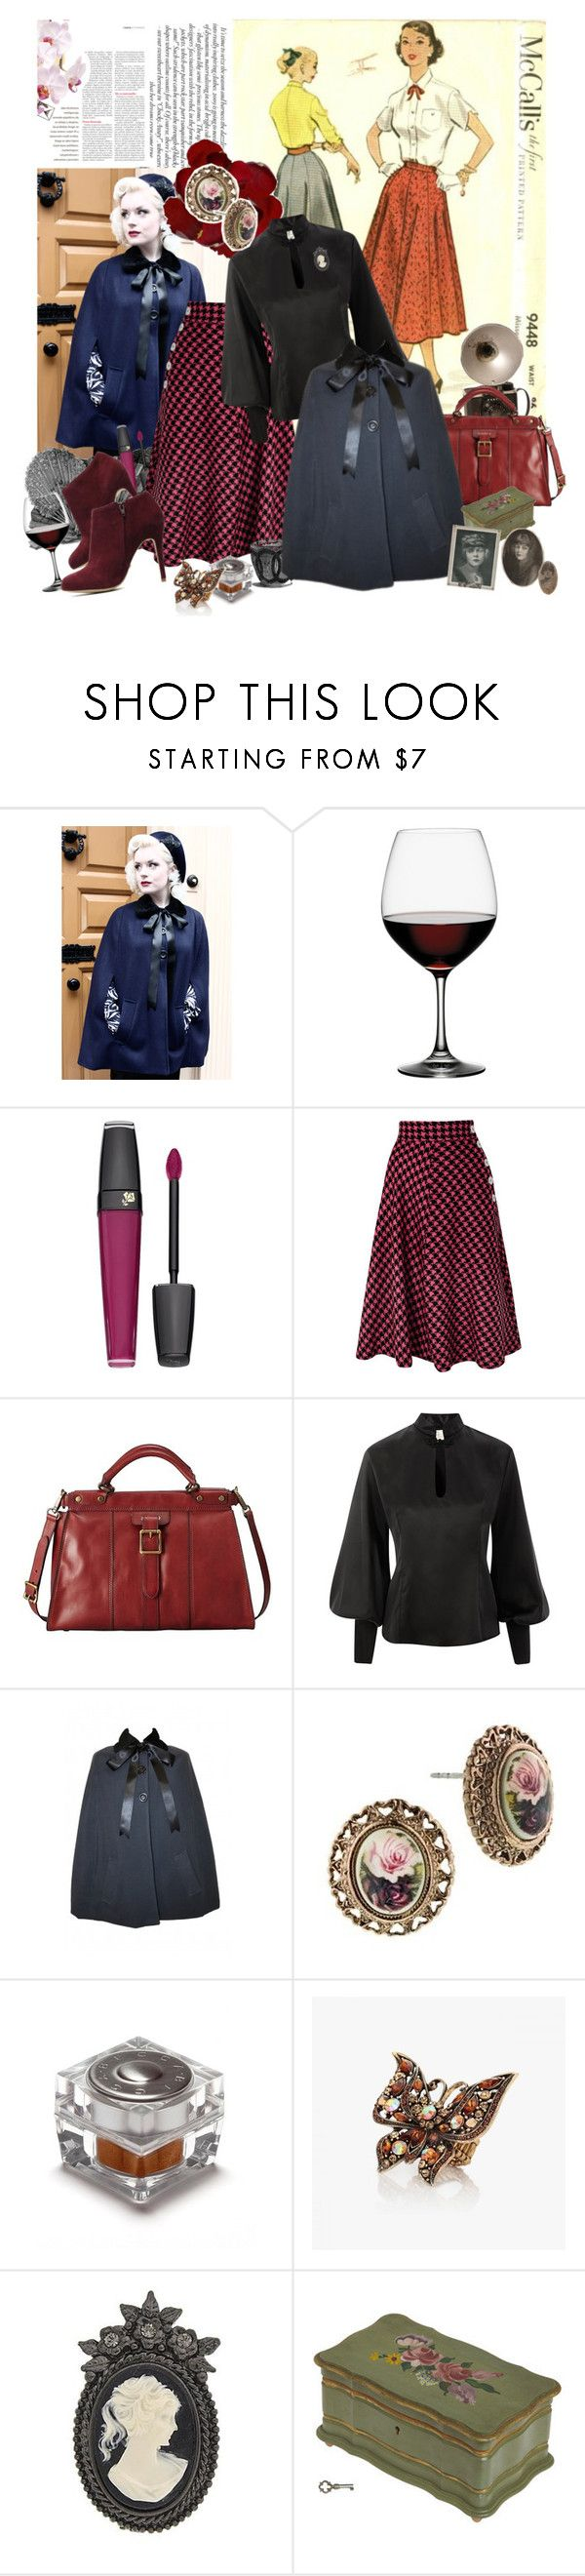 """""""1950's"""" by valc5 ❤ liked on Polyvore featuring Tara Starlet, Spiegelau, Lancôme, Freeze, FOSSIL, 1928 and Becca Cosmetics"""